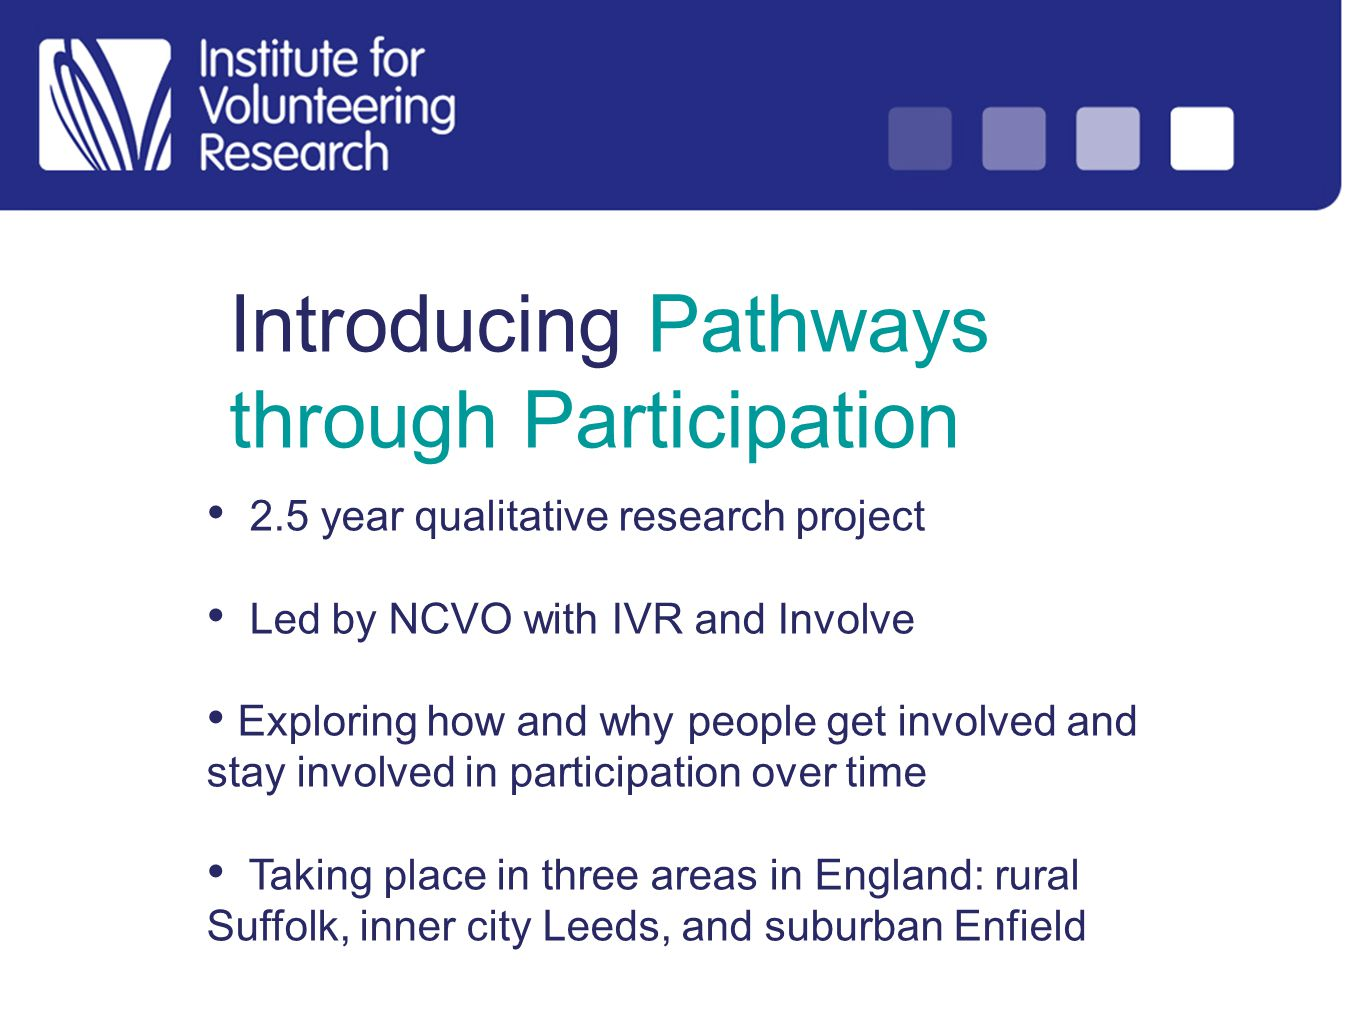 Introducing Pathways through Participation 2.5 year qualitative research project Led by NCVO with IVR and Involve Exploring how and why people get involved and stay involved in participation over time Taking place in three areas in England: rural Suffolk, inner city Leeds, and suburban Enfield